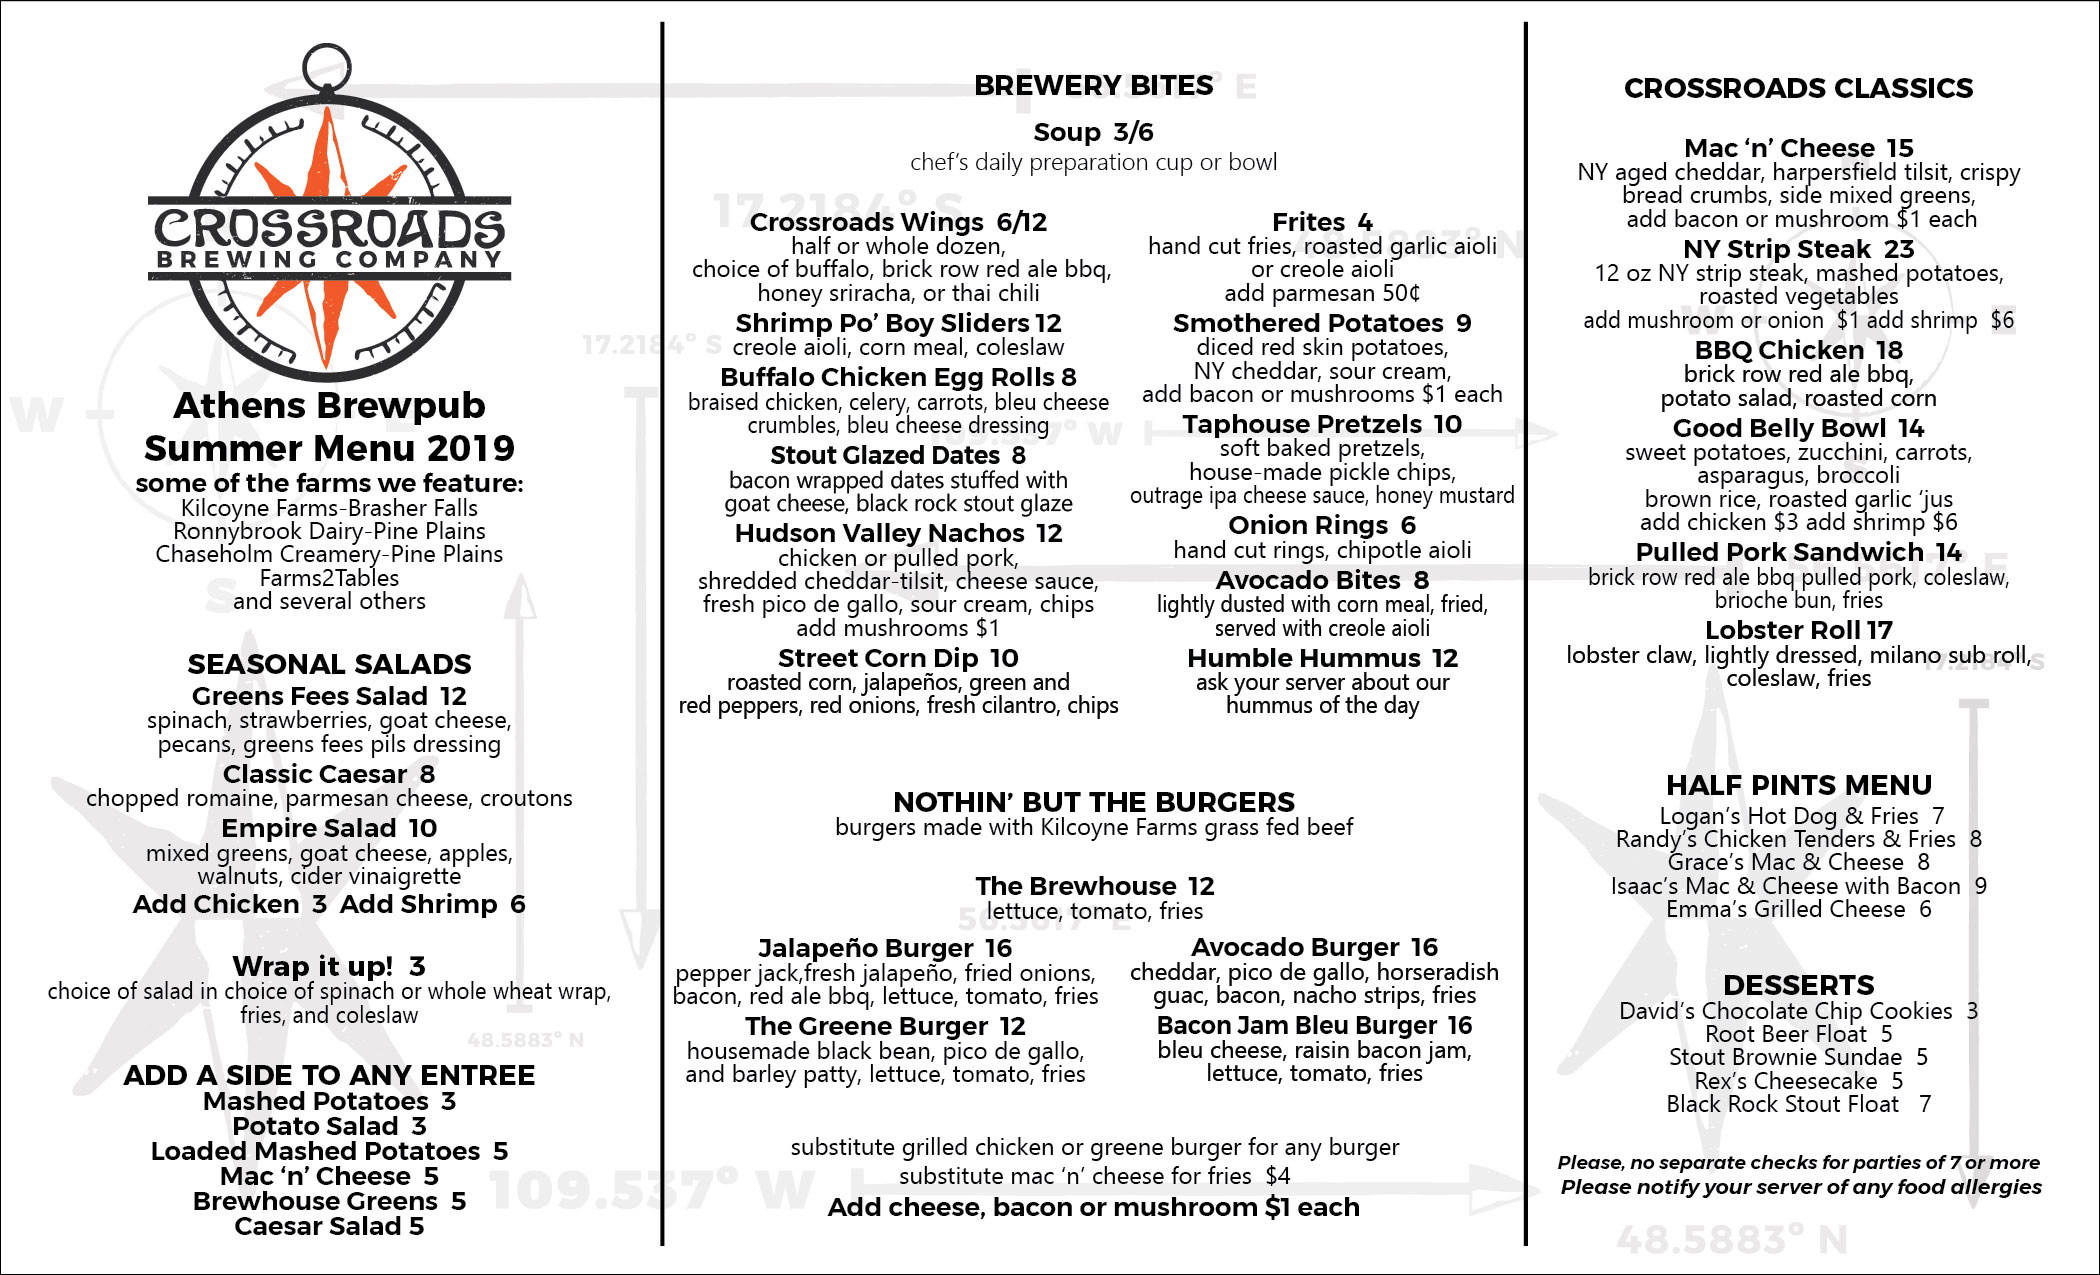 Athens Brewpub Summer 2019 Food Menu